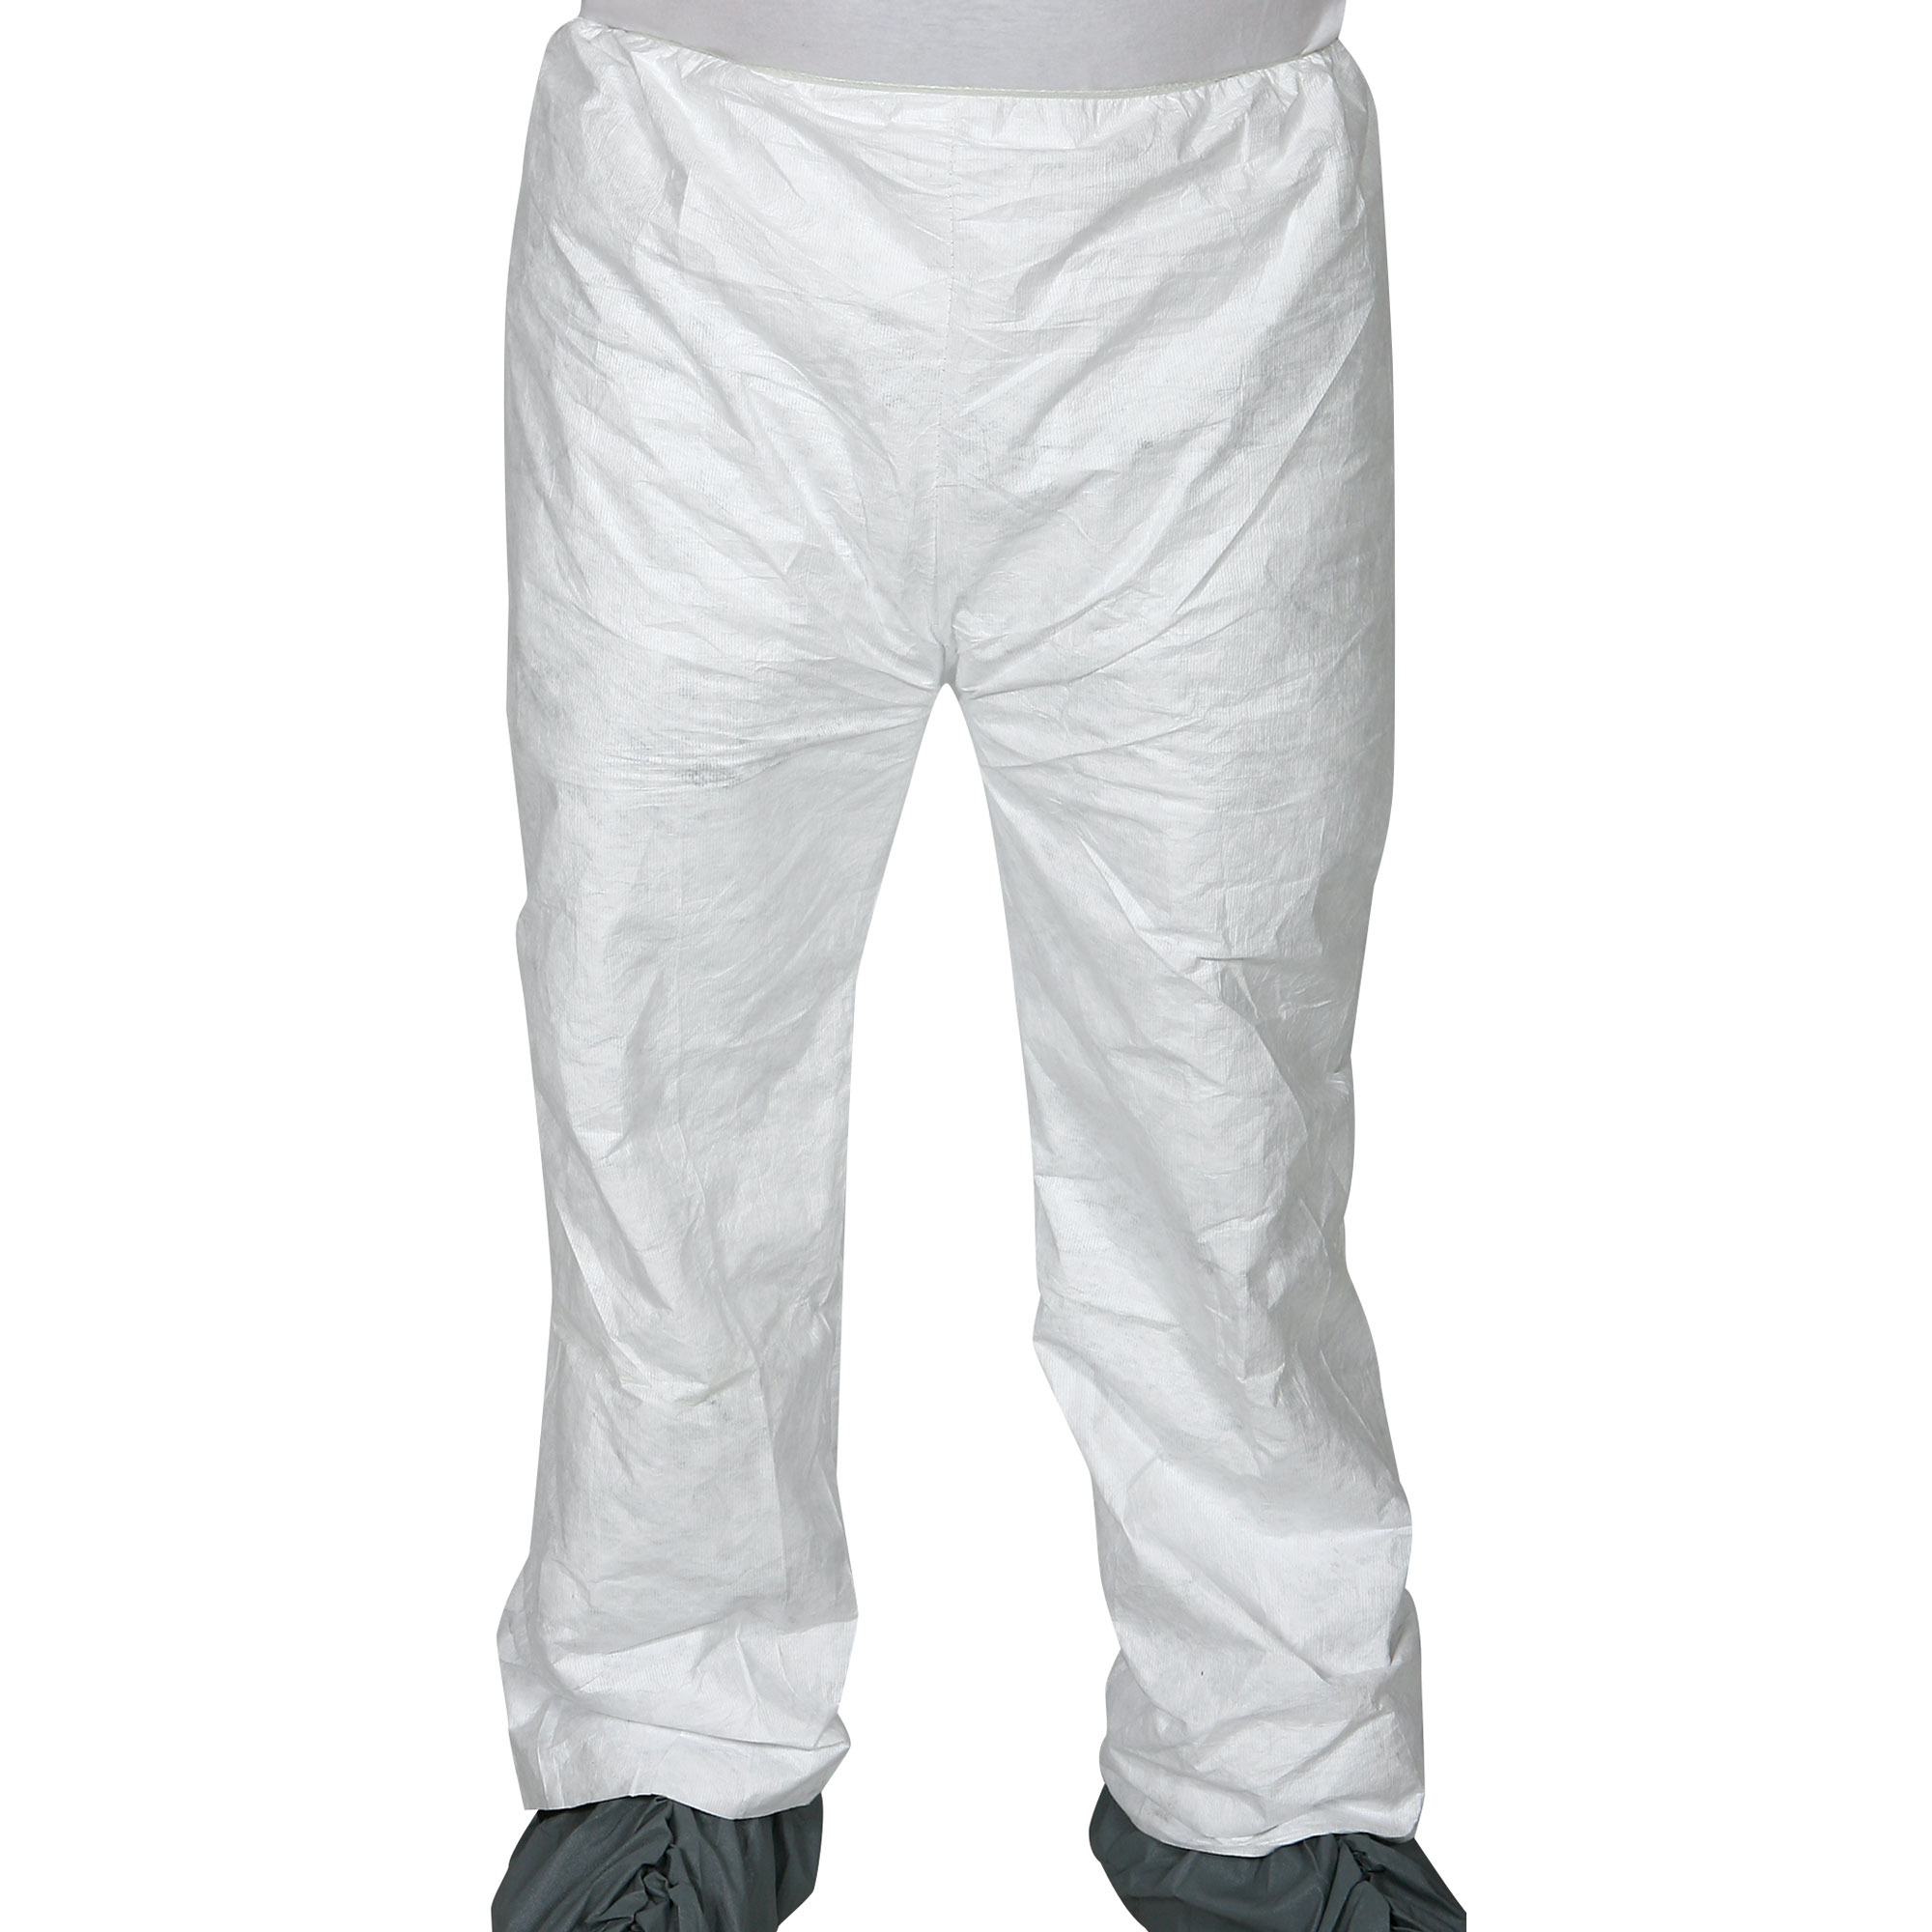 Tyvek Disposable Pants Xl - White - 14350